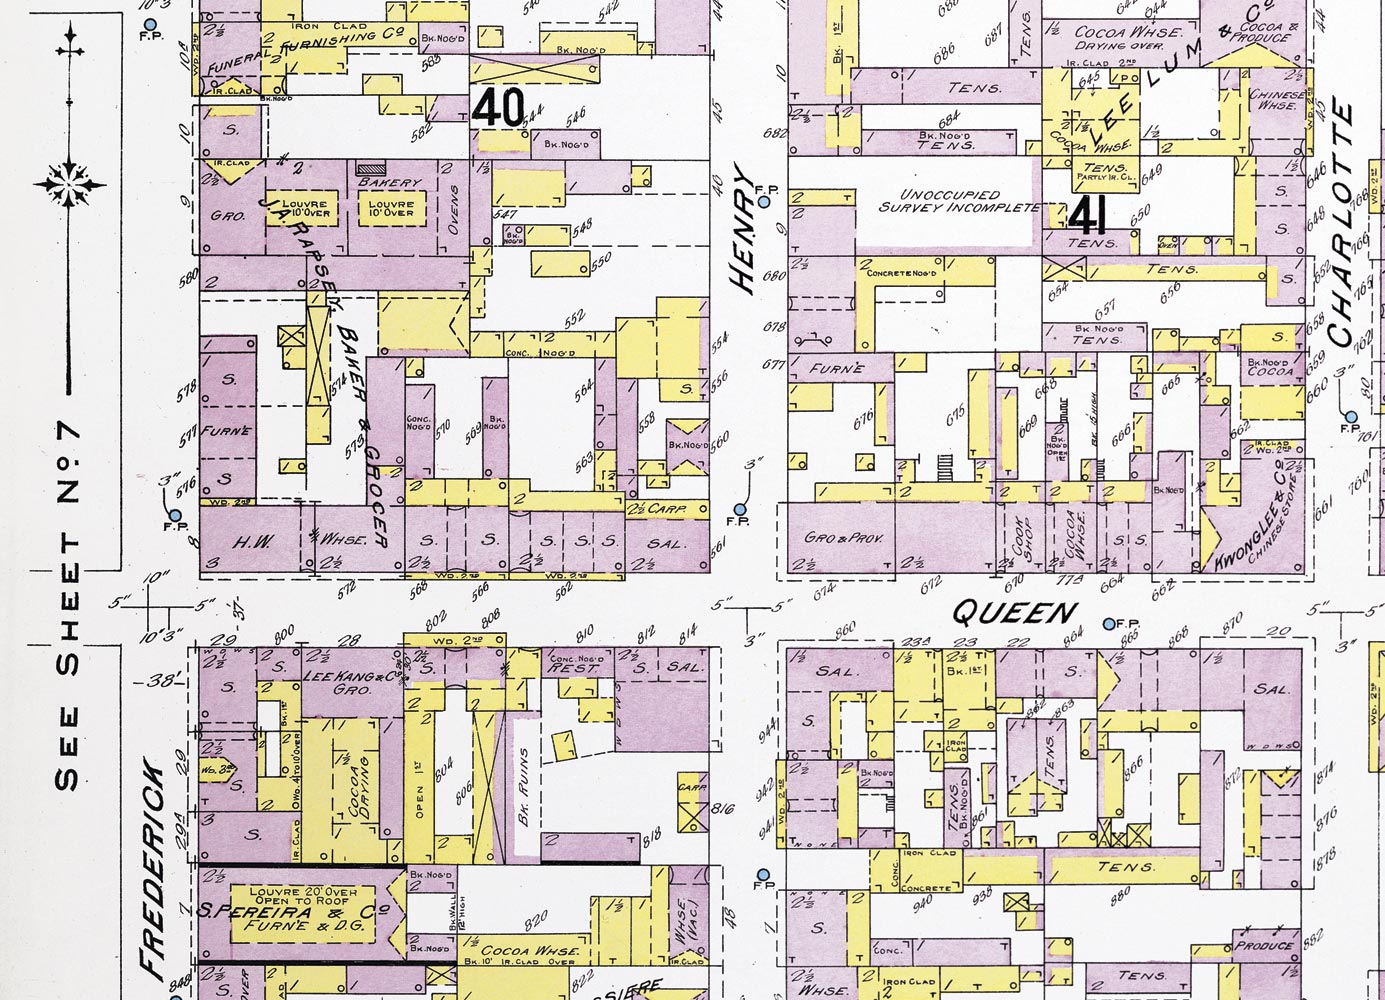 Plan of barrack yards inside the block of Queen, Charlotte, and George Streets, below the Eastern Market. Detail from sheet eight of Insurance Plan of Port of Spain, Trinidad, by Chas. E. Goad. Courtesy Digital Library of the Caribbean/Stephen Stuempfle